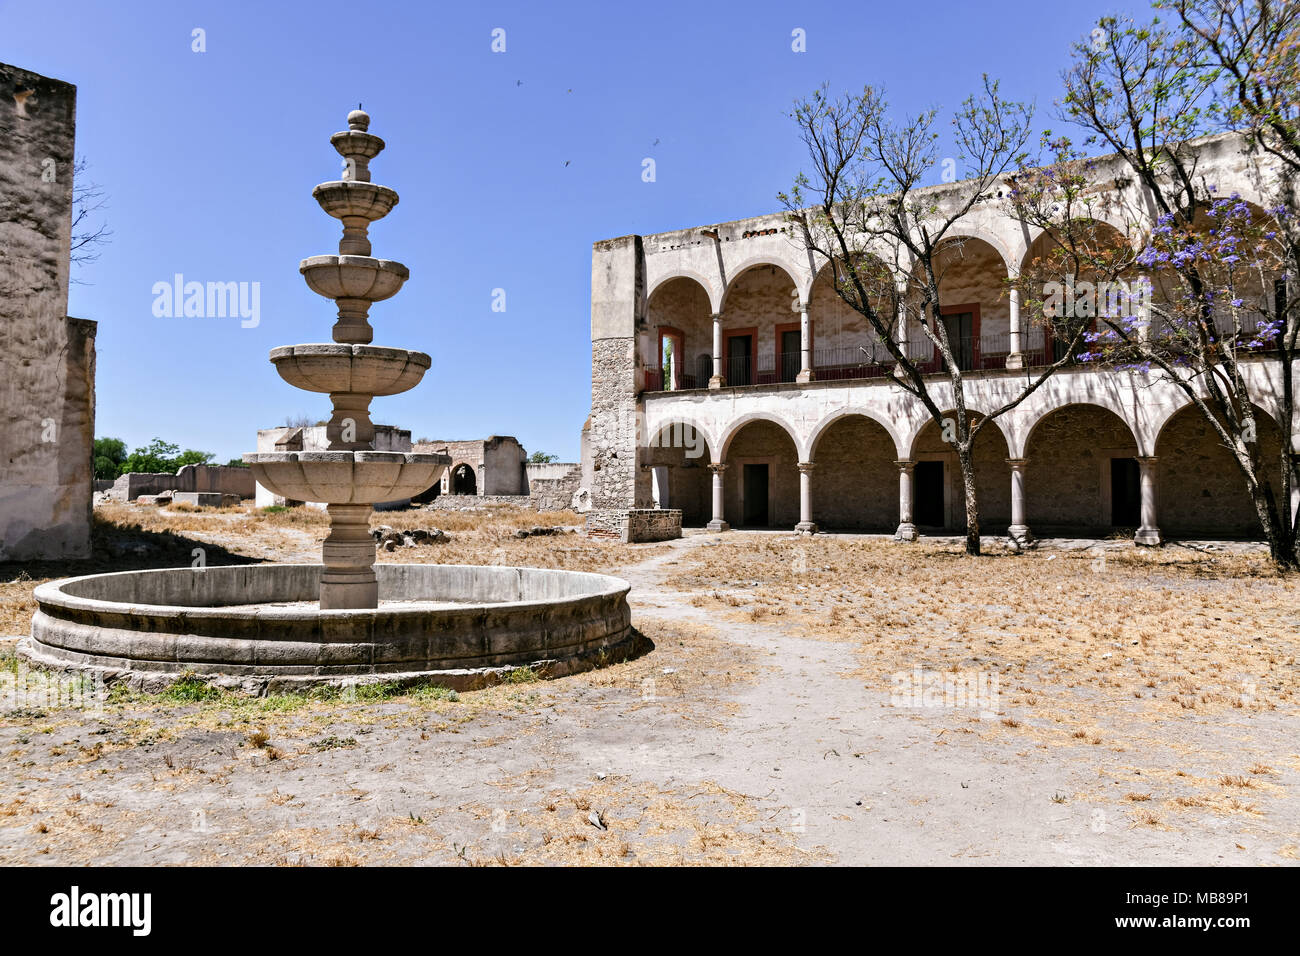 A secondary courtyard and fountain at the fading Hacienda de Jaral de Berrio in Jaral de Berrios, Guanajuato, Mexico. The abandoned Jaral de Berrio hacienda was once the largest in Mexico and housed over 6,000 people on the property and is credited with creating Mescal. - Stock Image